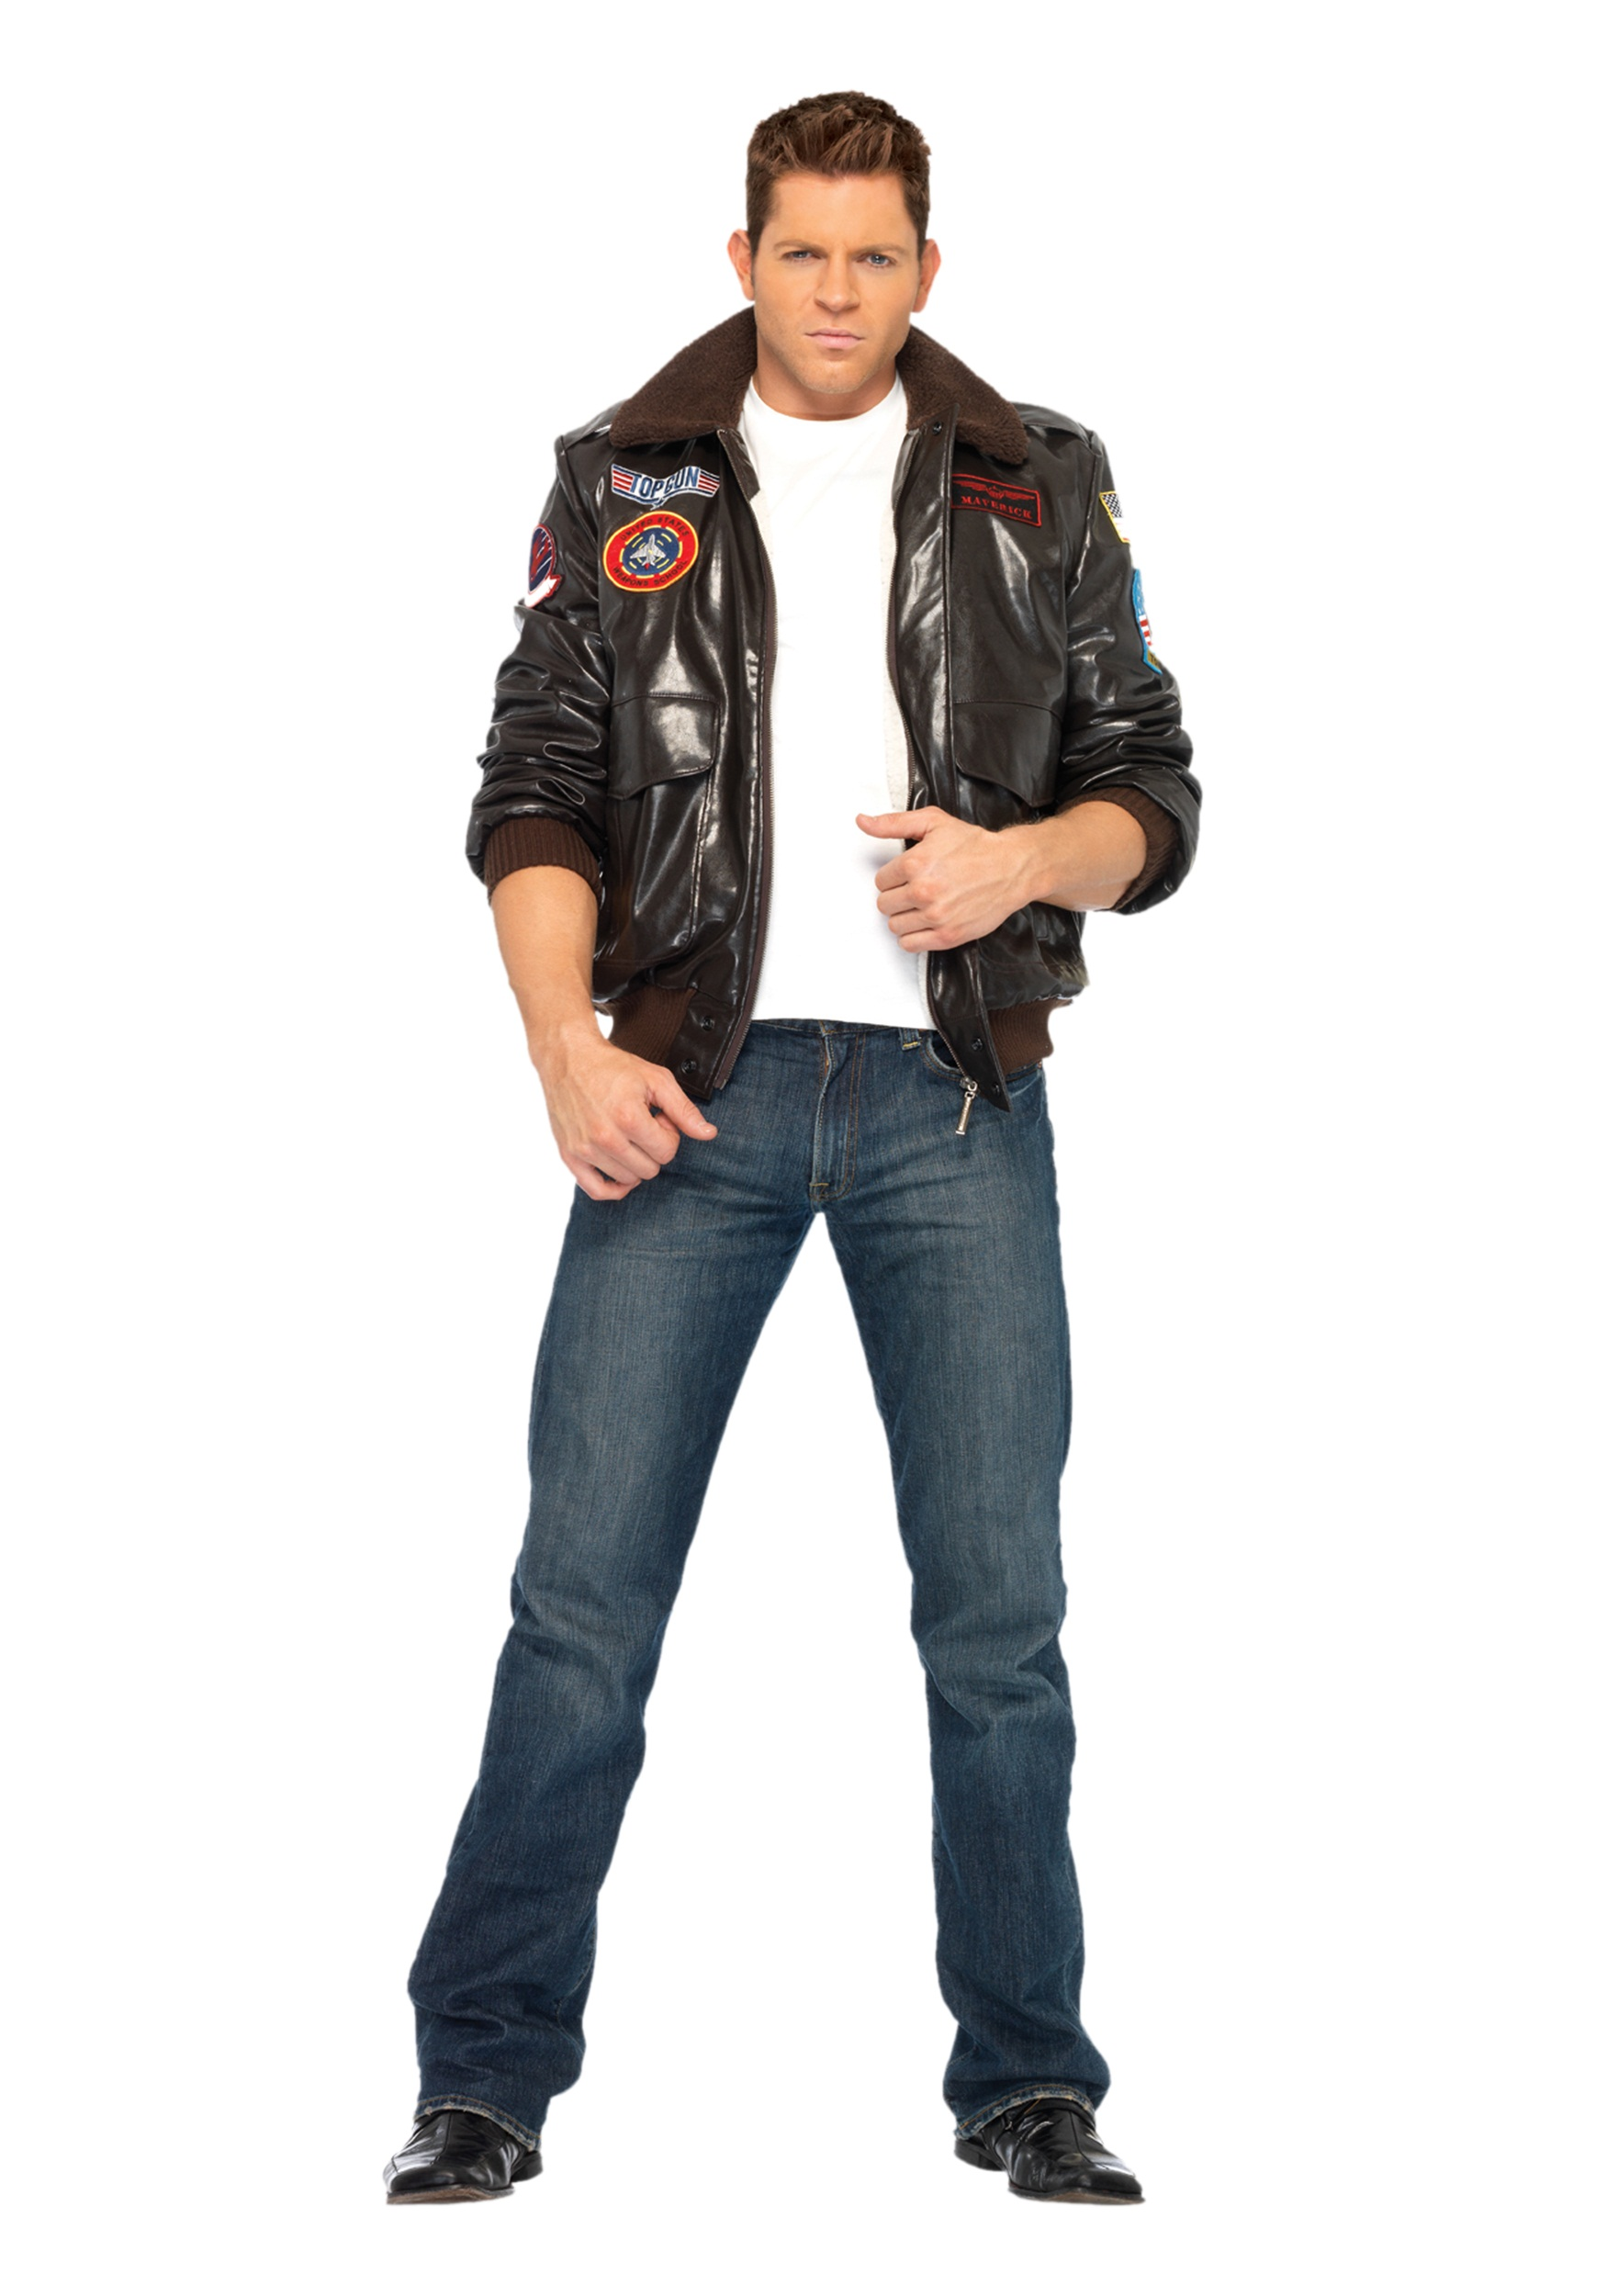 Back to80u0027s Costumes Adult Costumes Menu0027s Costumes Military Costumes Pilot Costumes Theme Costumes Top Gun Costumes TV / Movie Costumes ...  sc 1 st  Halloween Costumes & Mens Top Gun Bomber Jacket - Halloween Costumes